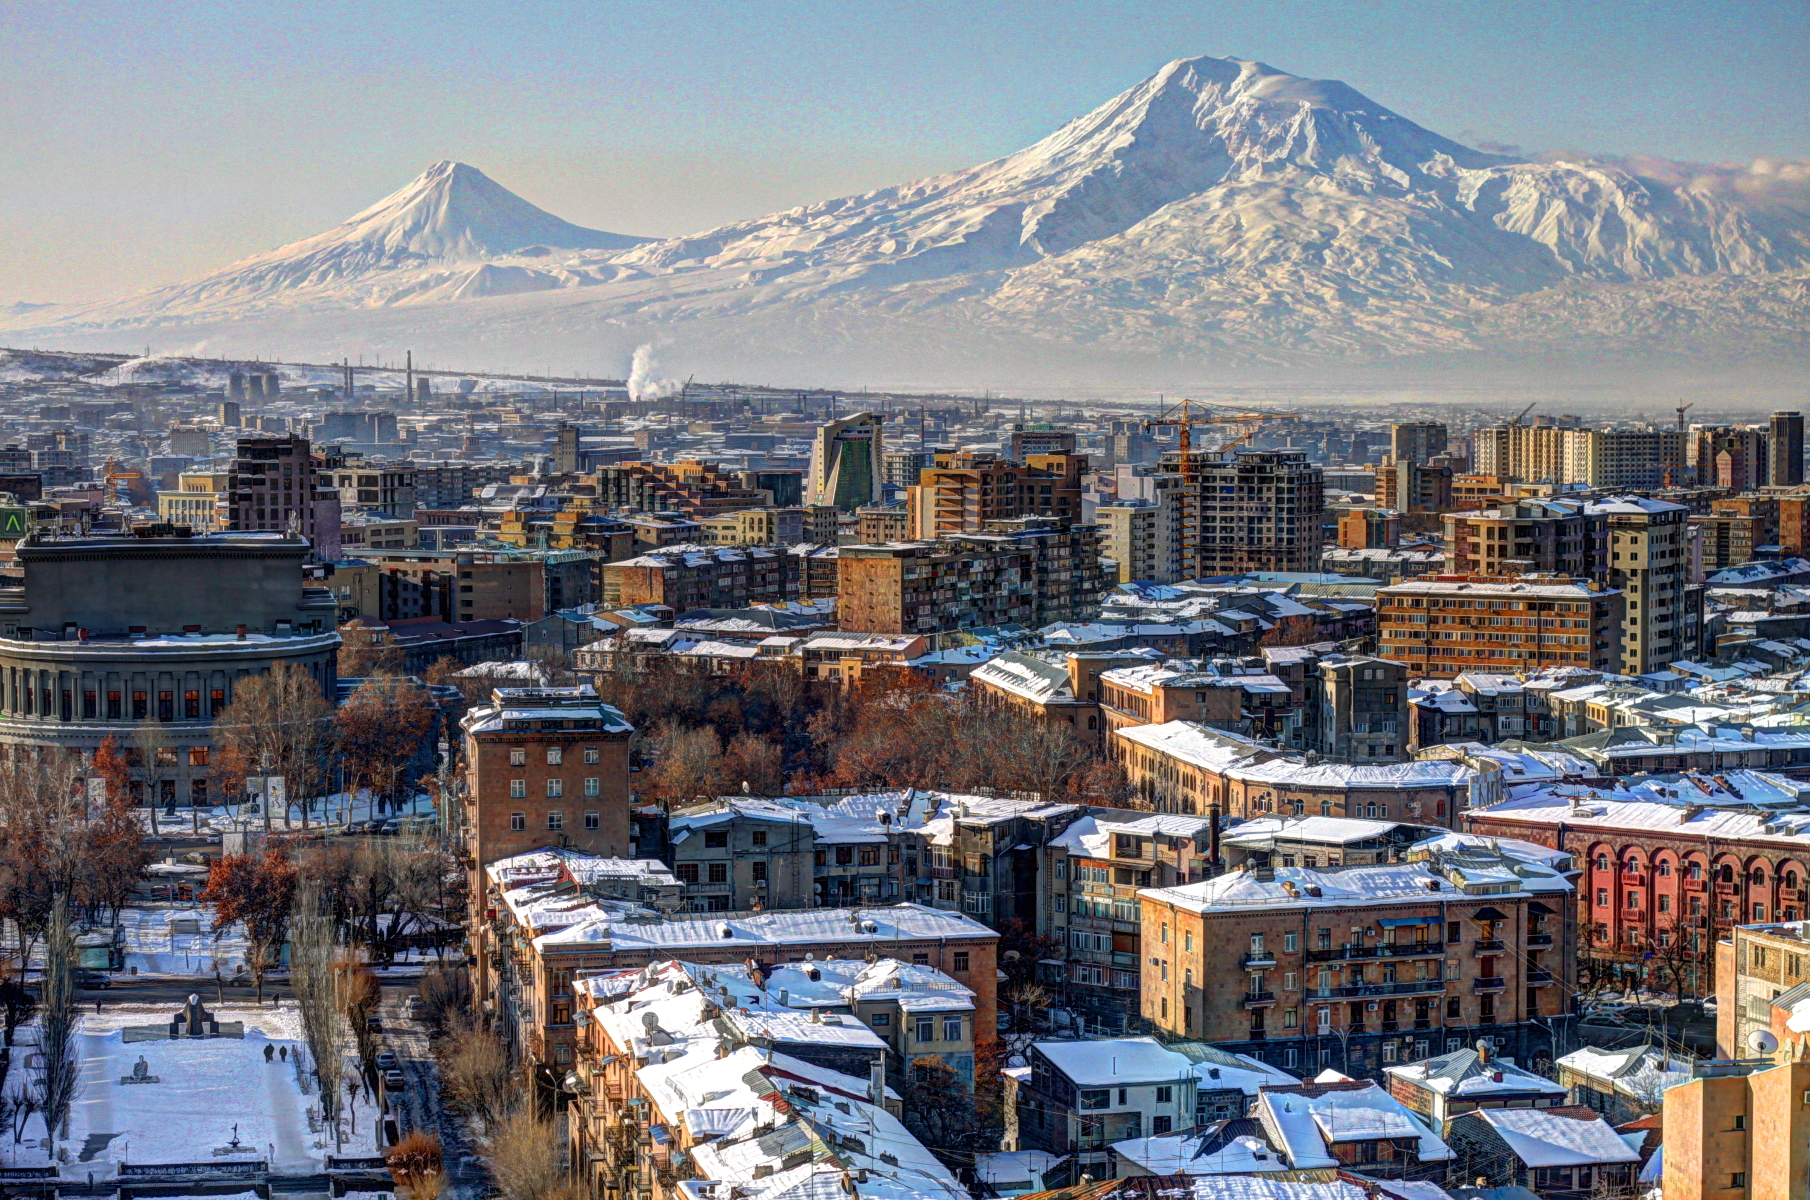 Winter view of Yerevan, Armenia